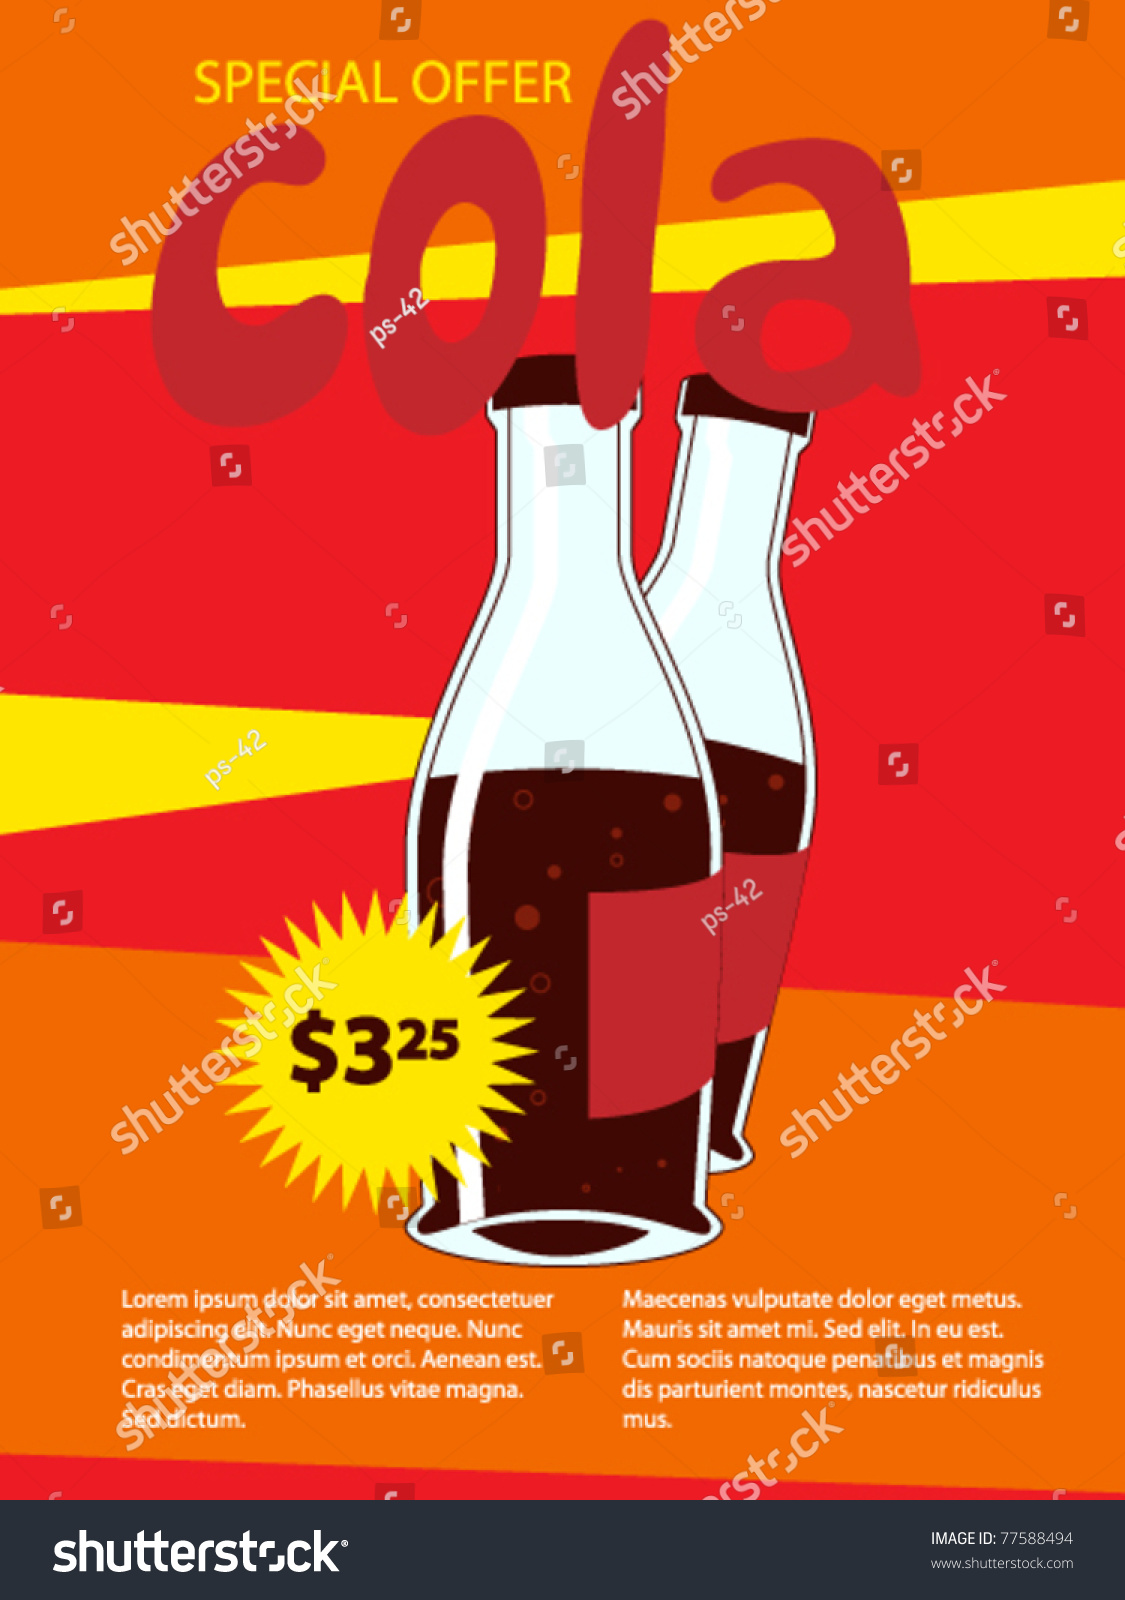 Price for a poster design - Product Poster For Shop Design Sale Card Offers Price Vector 77588494 Shutterstock